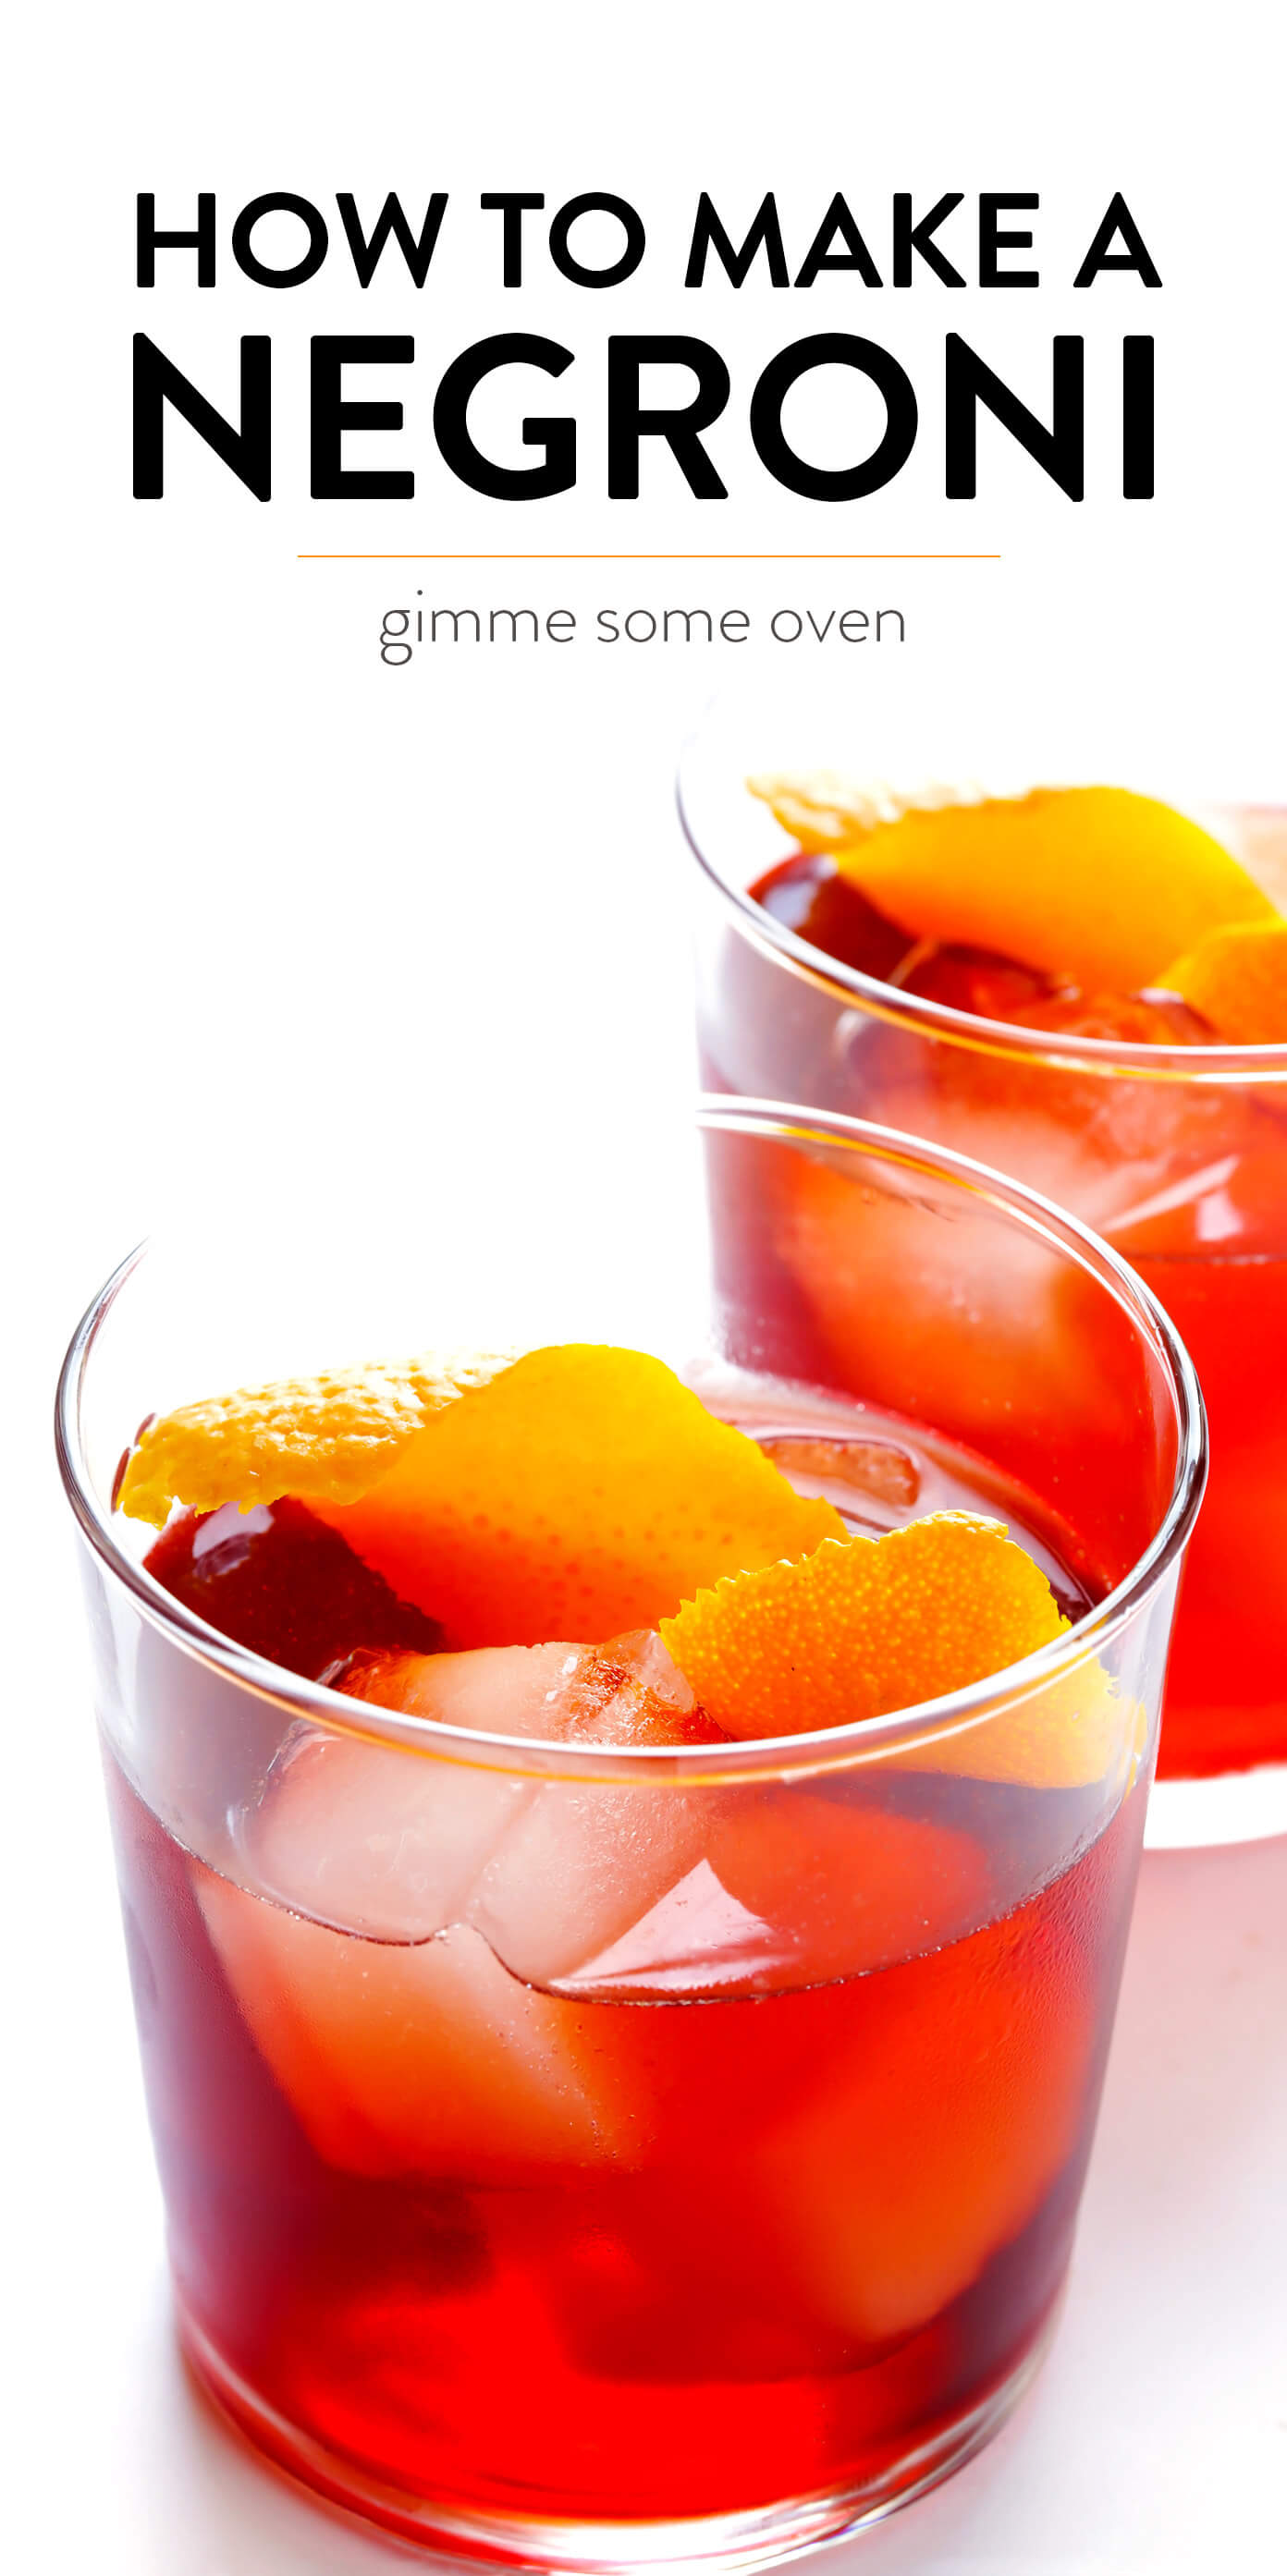 How To Make A Negroni Cocktail with Gin, Vermouth and Campari